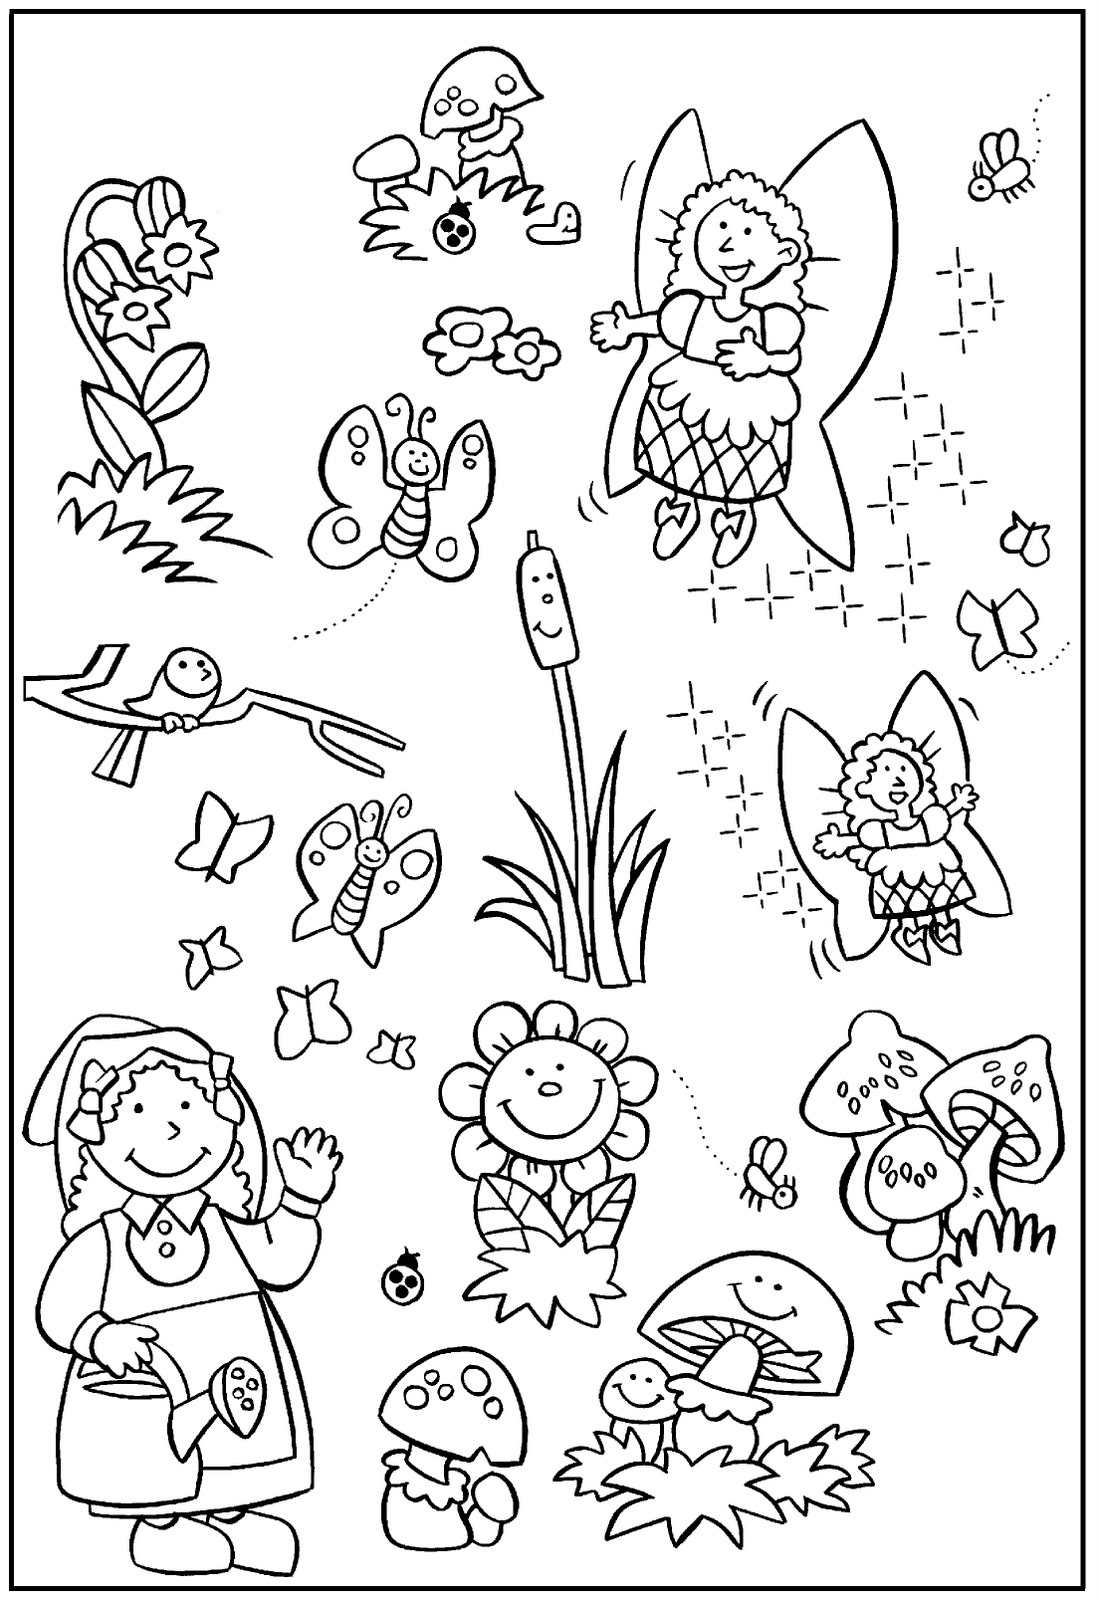 Also some coloring pages